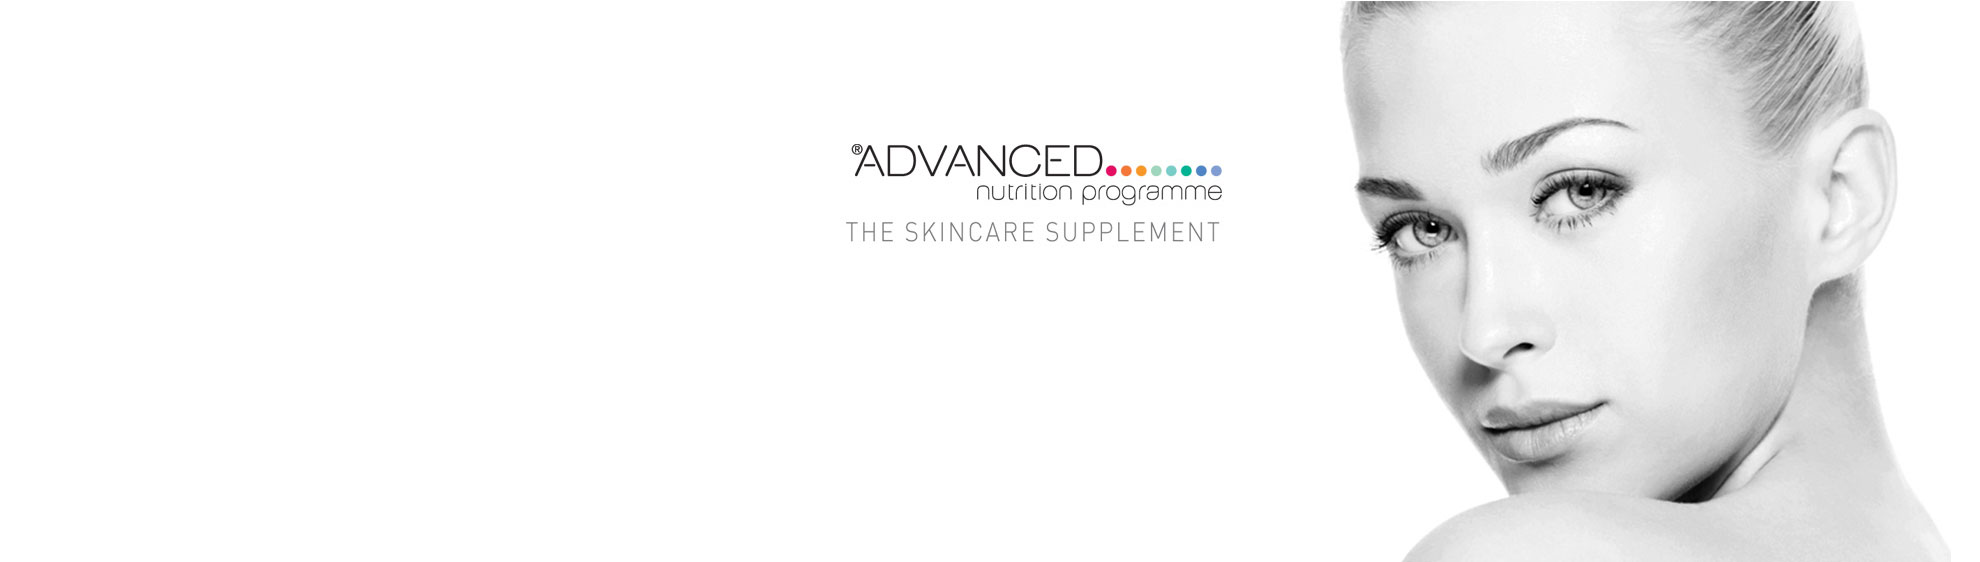 advanced nutrition skincare program leeds